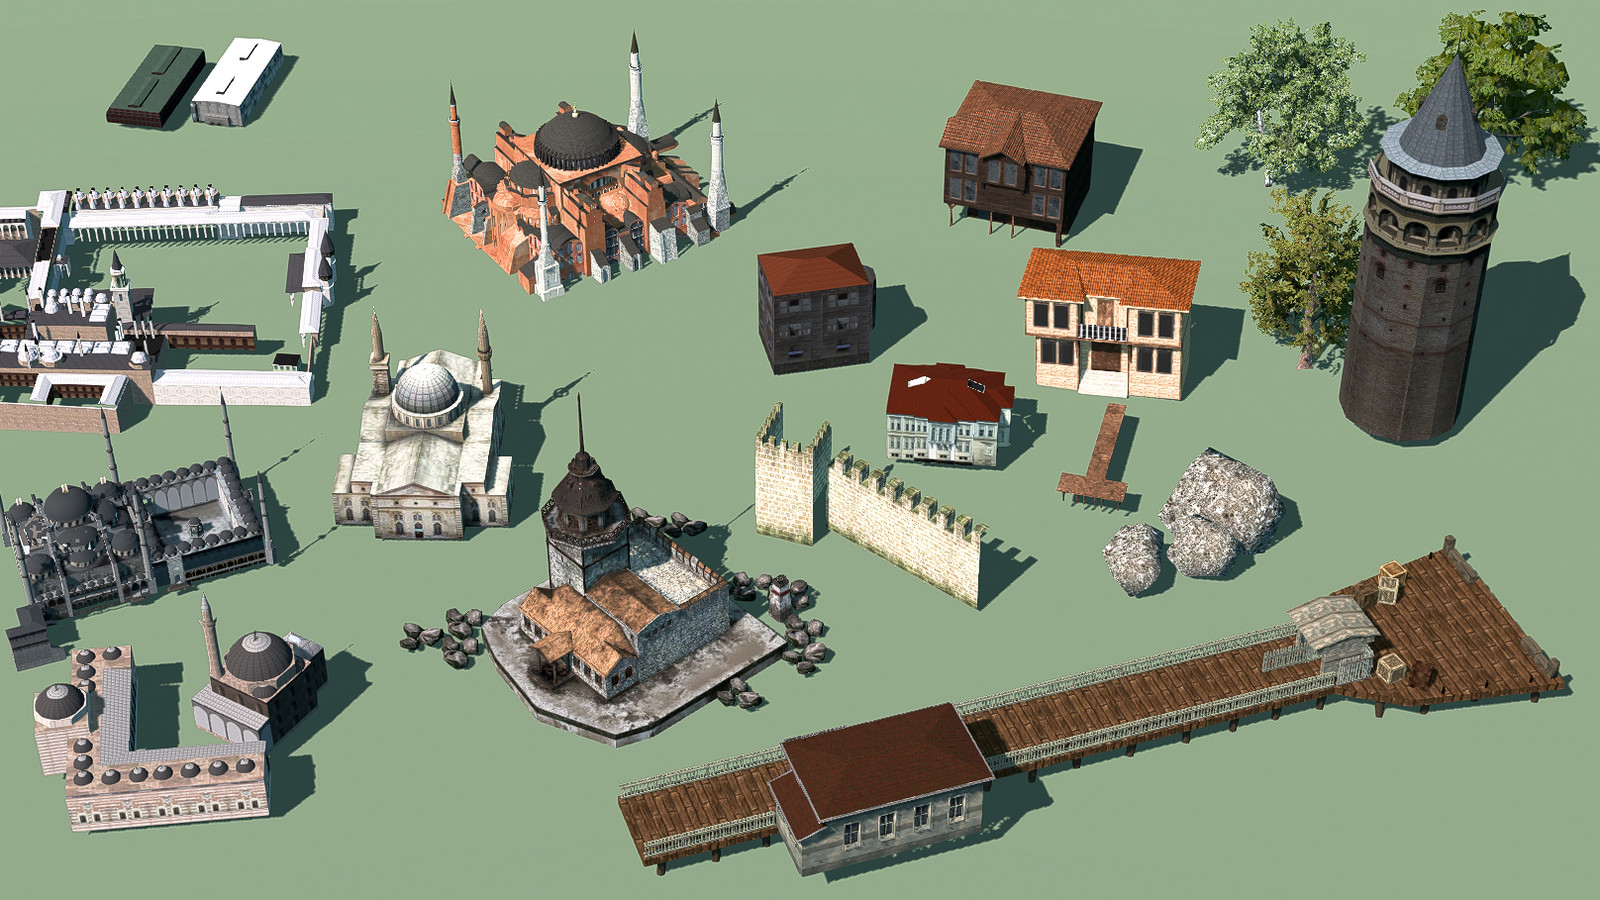 making 1919's Istanbul with very limited assets, although  creating  a varied look. 9 Landmark Buildings,  3 generic traditional Istanbul houses, city walls and tower, 3 rocks and 3 trees